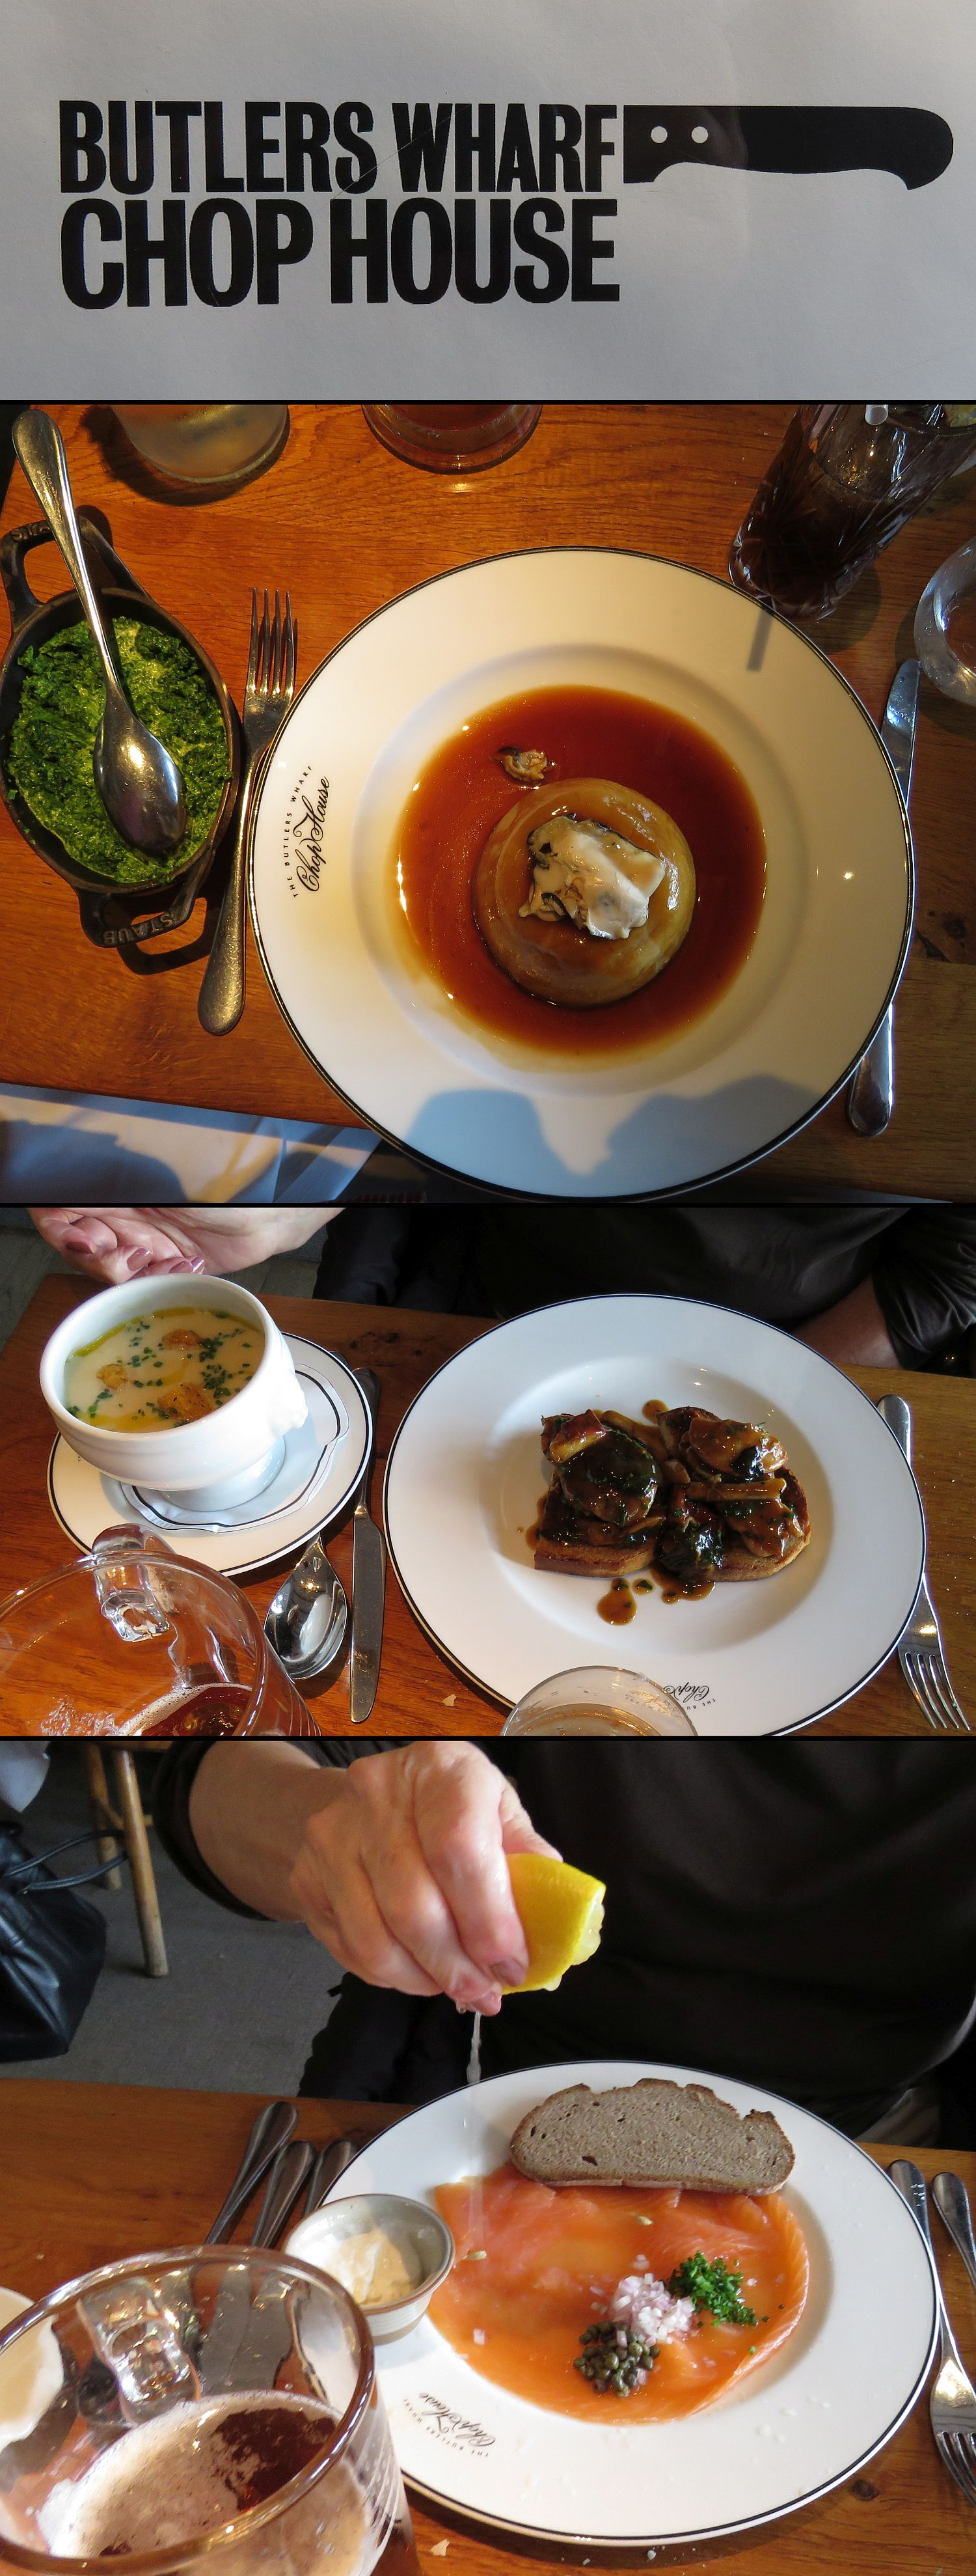 Steamed steak and kidney pudding with oysters and a side of creamed spinach, celeriac soup, wild mushrooms on toast, smoked salmon and a pint.